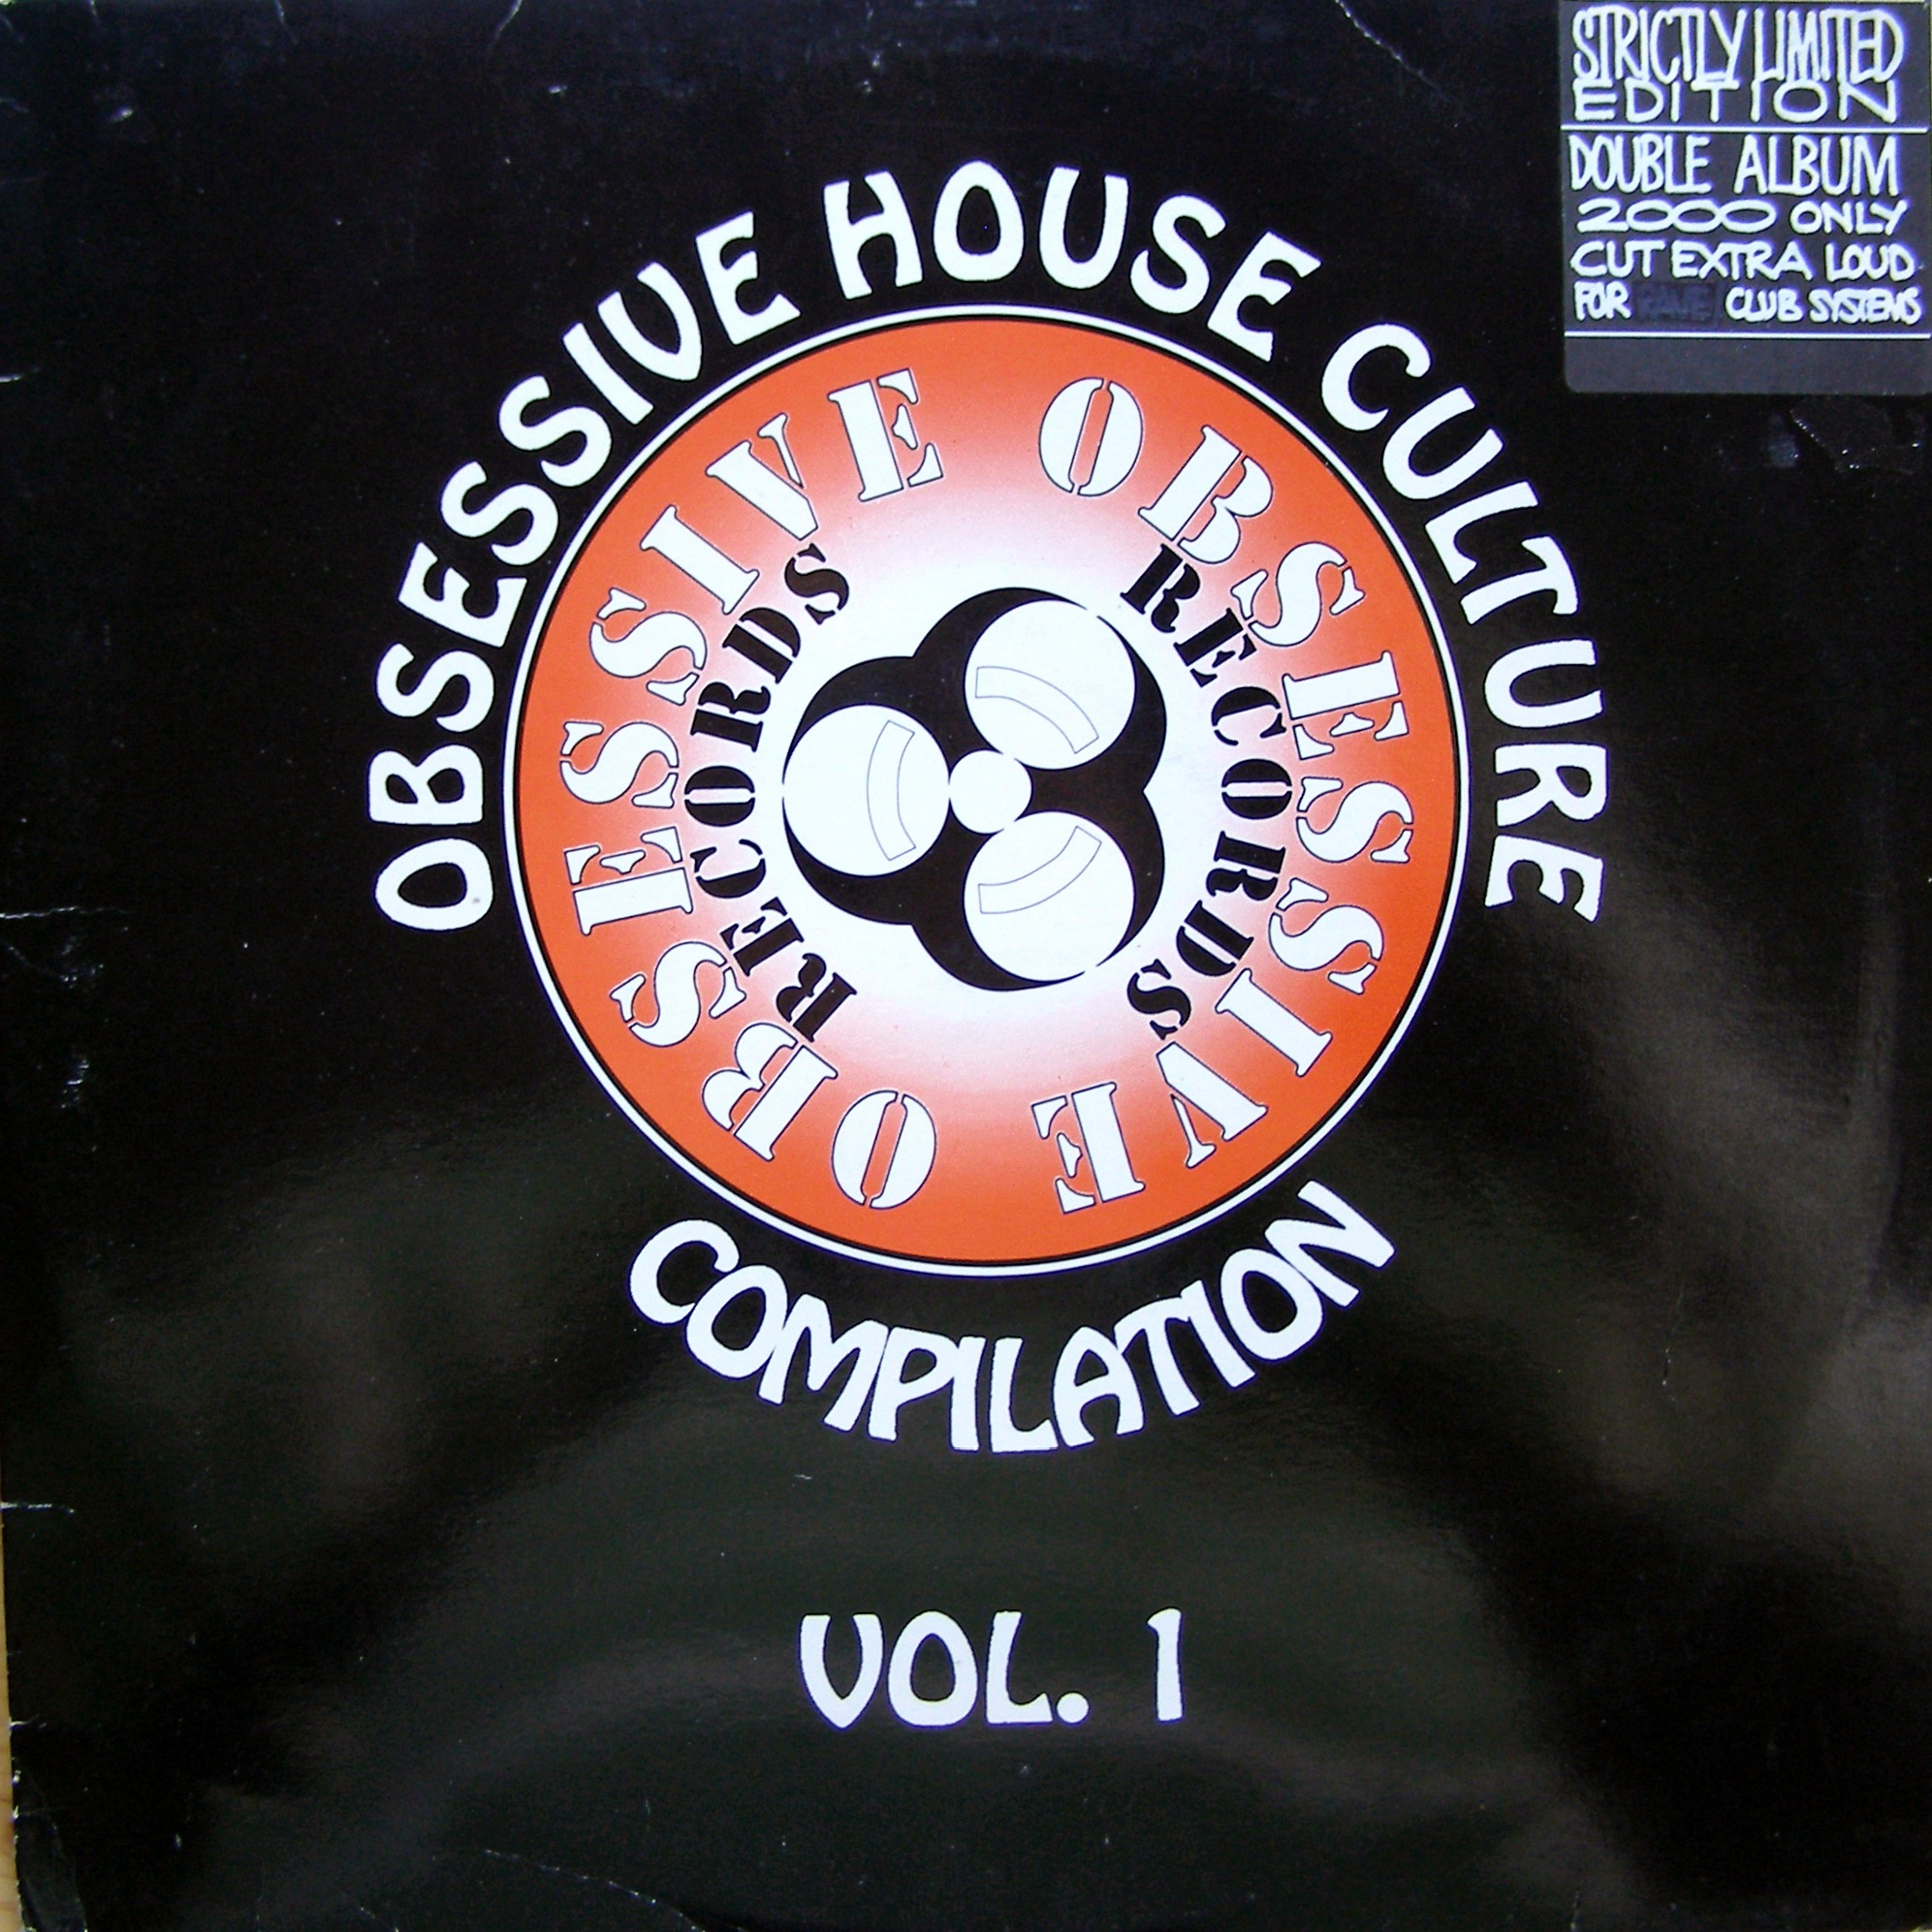 "2x12"" Obsessive House Culture - Compilation Vol. 1"